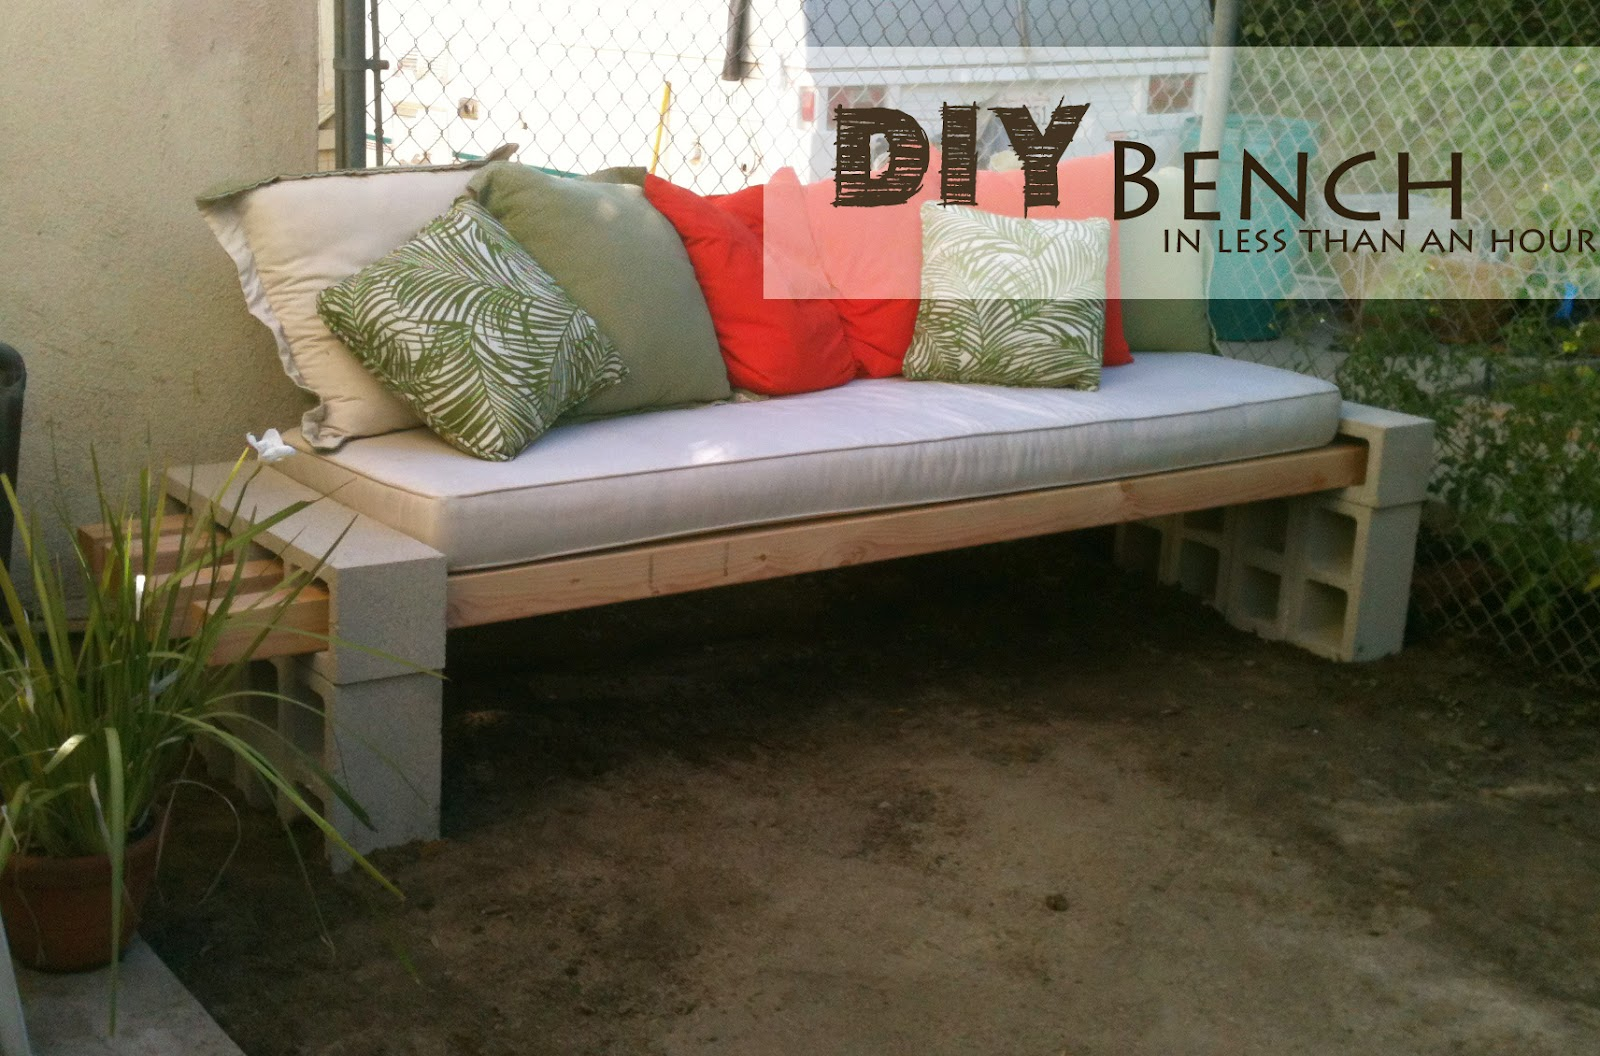 garden bench is always a welcome addition to any outdoor living